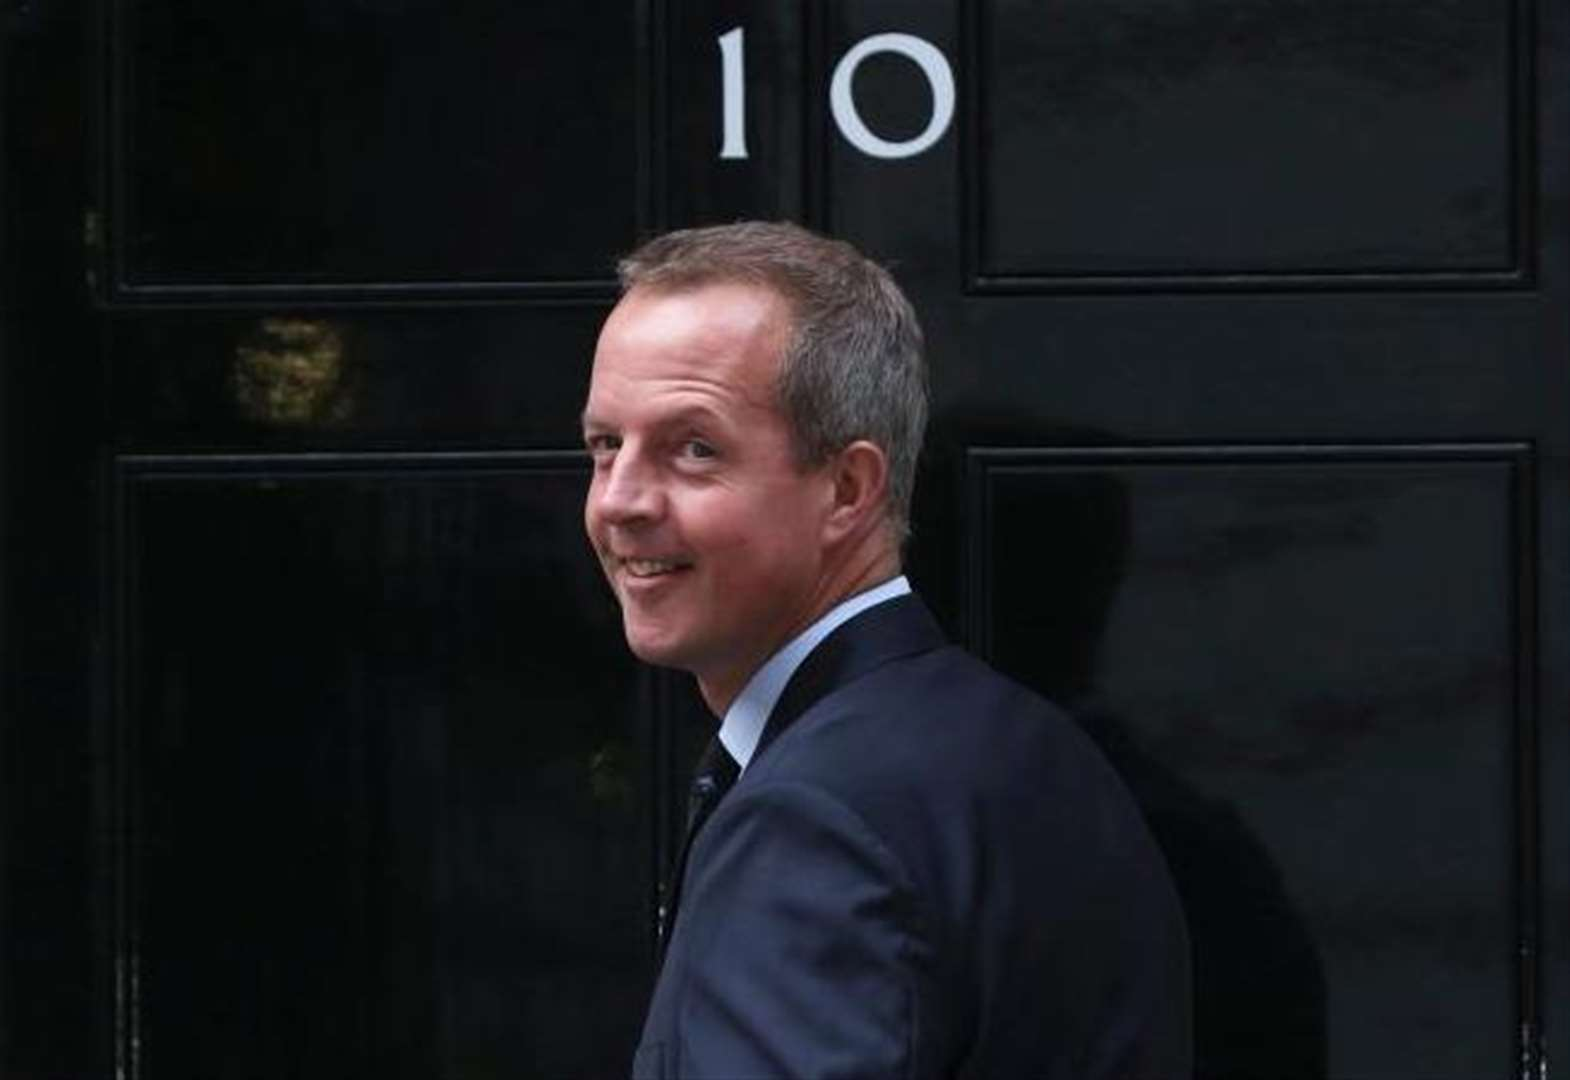 MP Nick Boles says leadership challenge is 'grossly irresponsible'